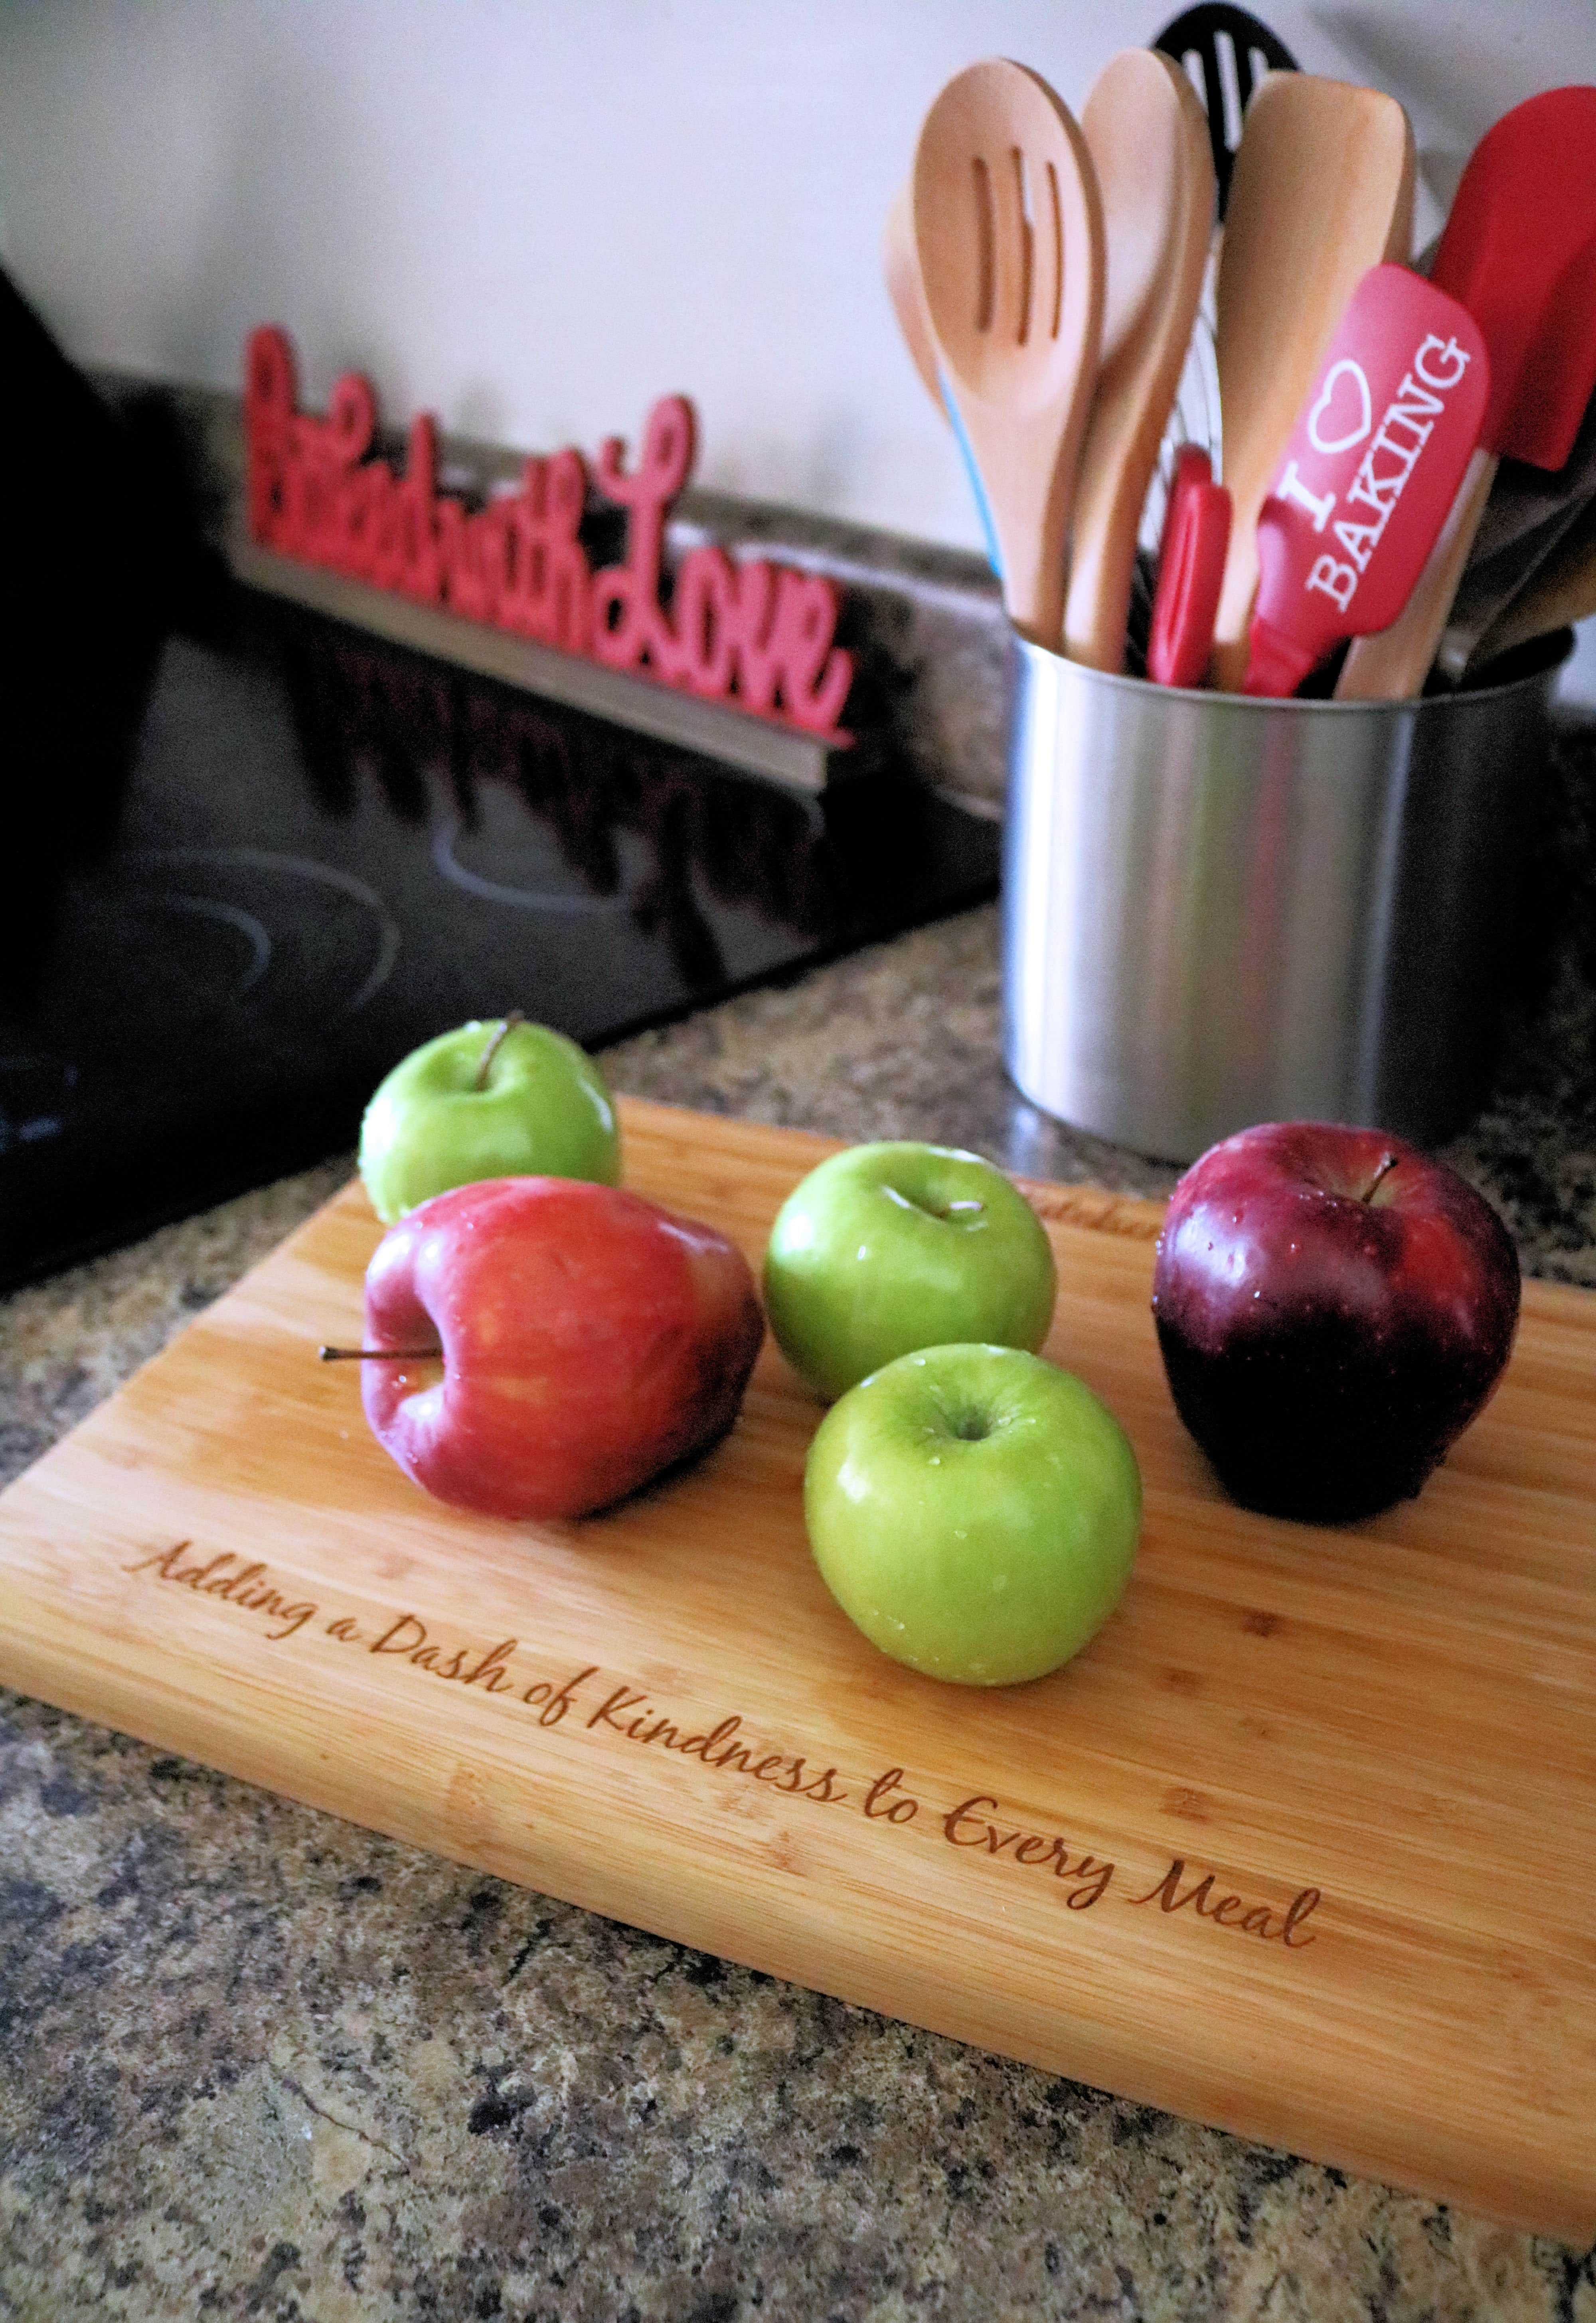 Looking for the best apple pie recipe? Featuring sweet and tart apples and a delicious peanut butter and oats crumble topping this Peanut Butter Apple Crumb Pie is the best apple crumb pie you'll ever eat!#applepie #applepierecipe